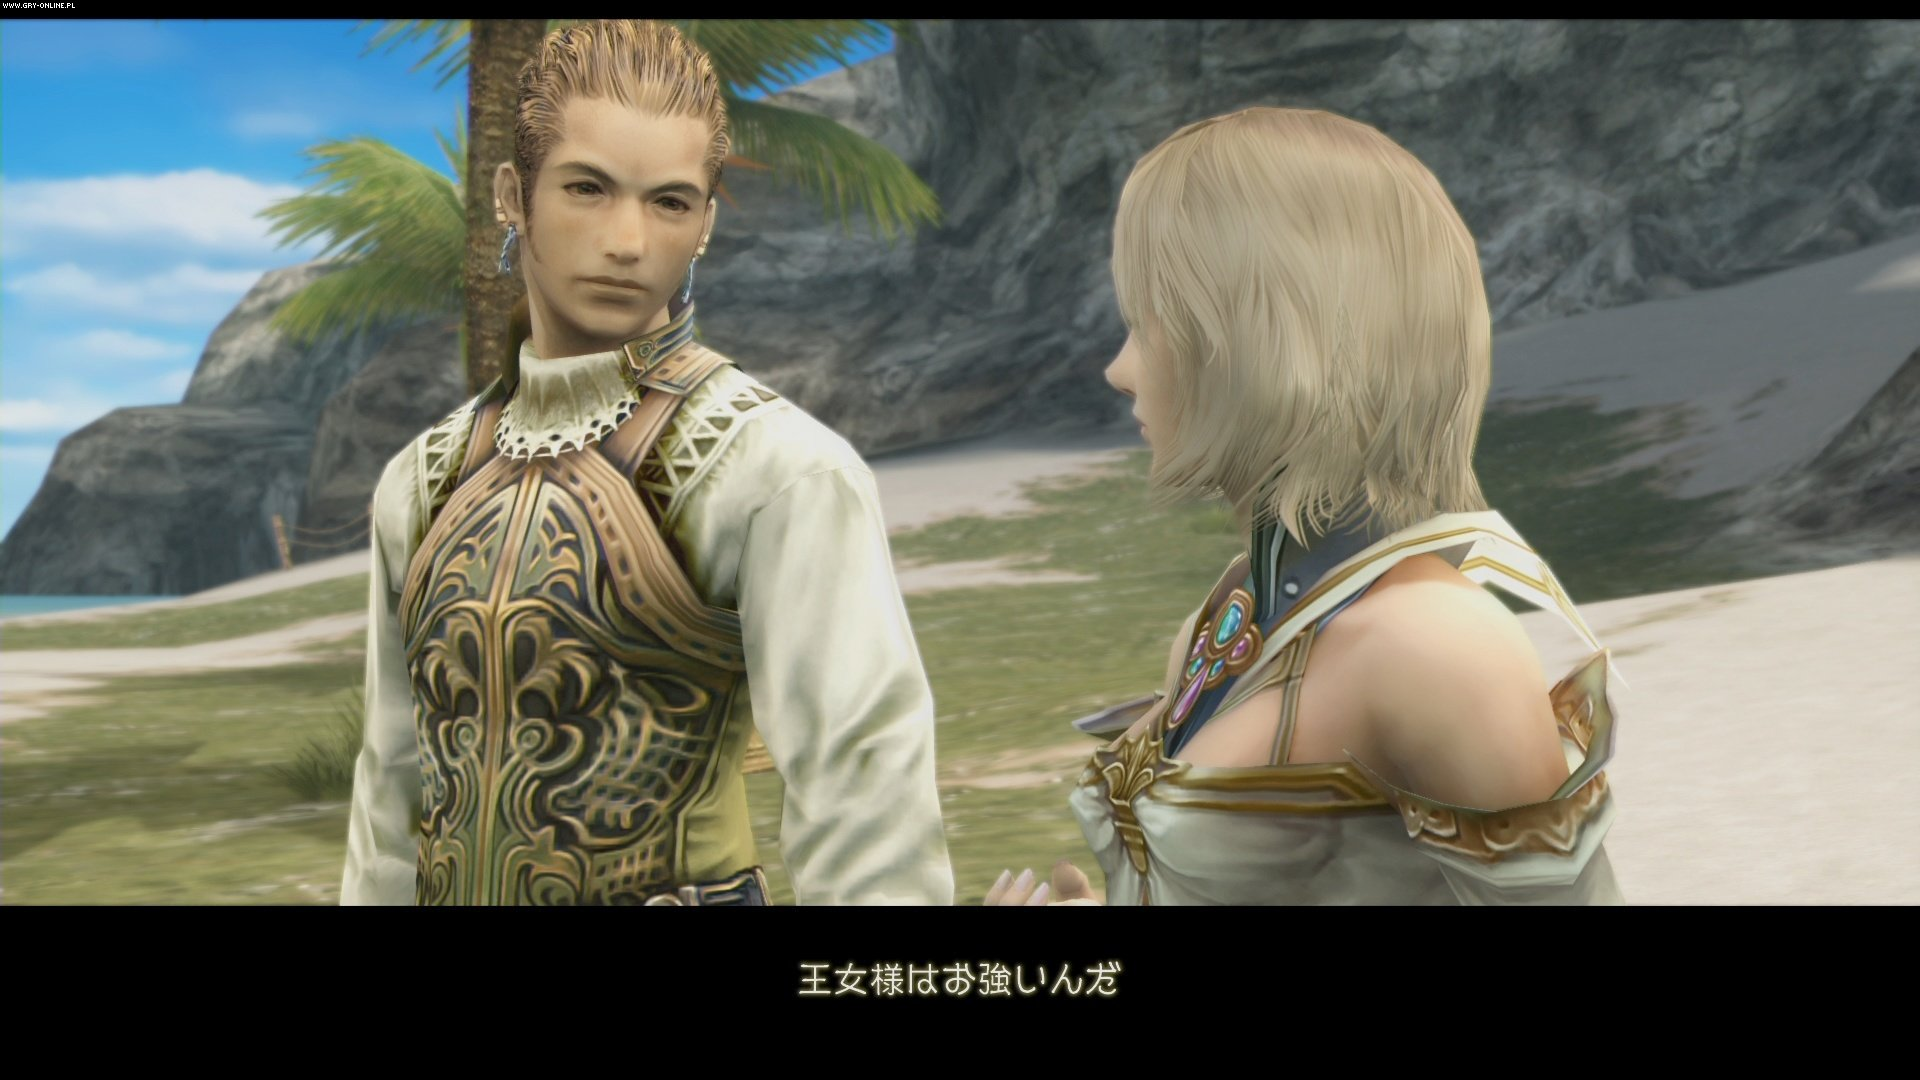 Final Fantasy XII: The Zodiac Age PS4 Games Image 1/62, Square-Enix, Square-Enix / Eidos